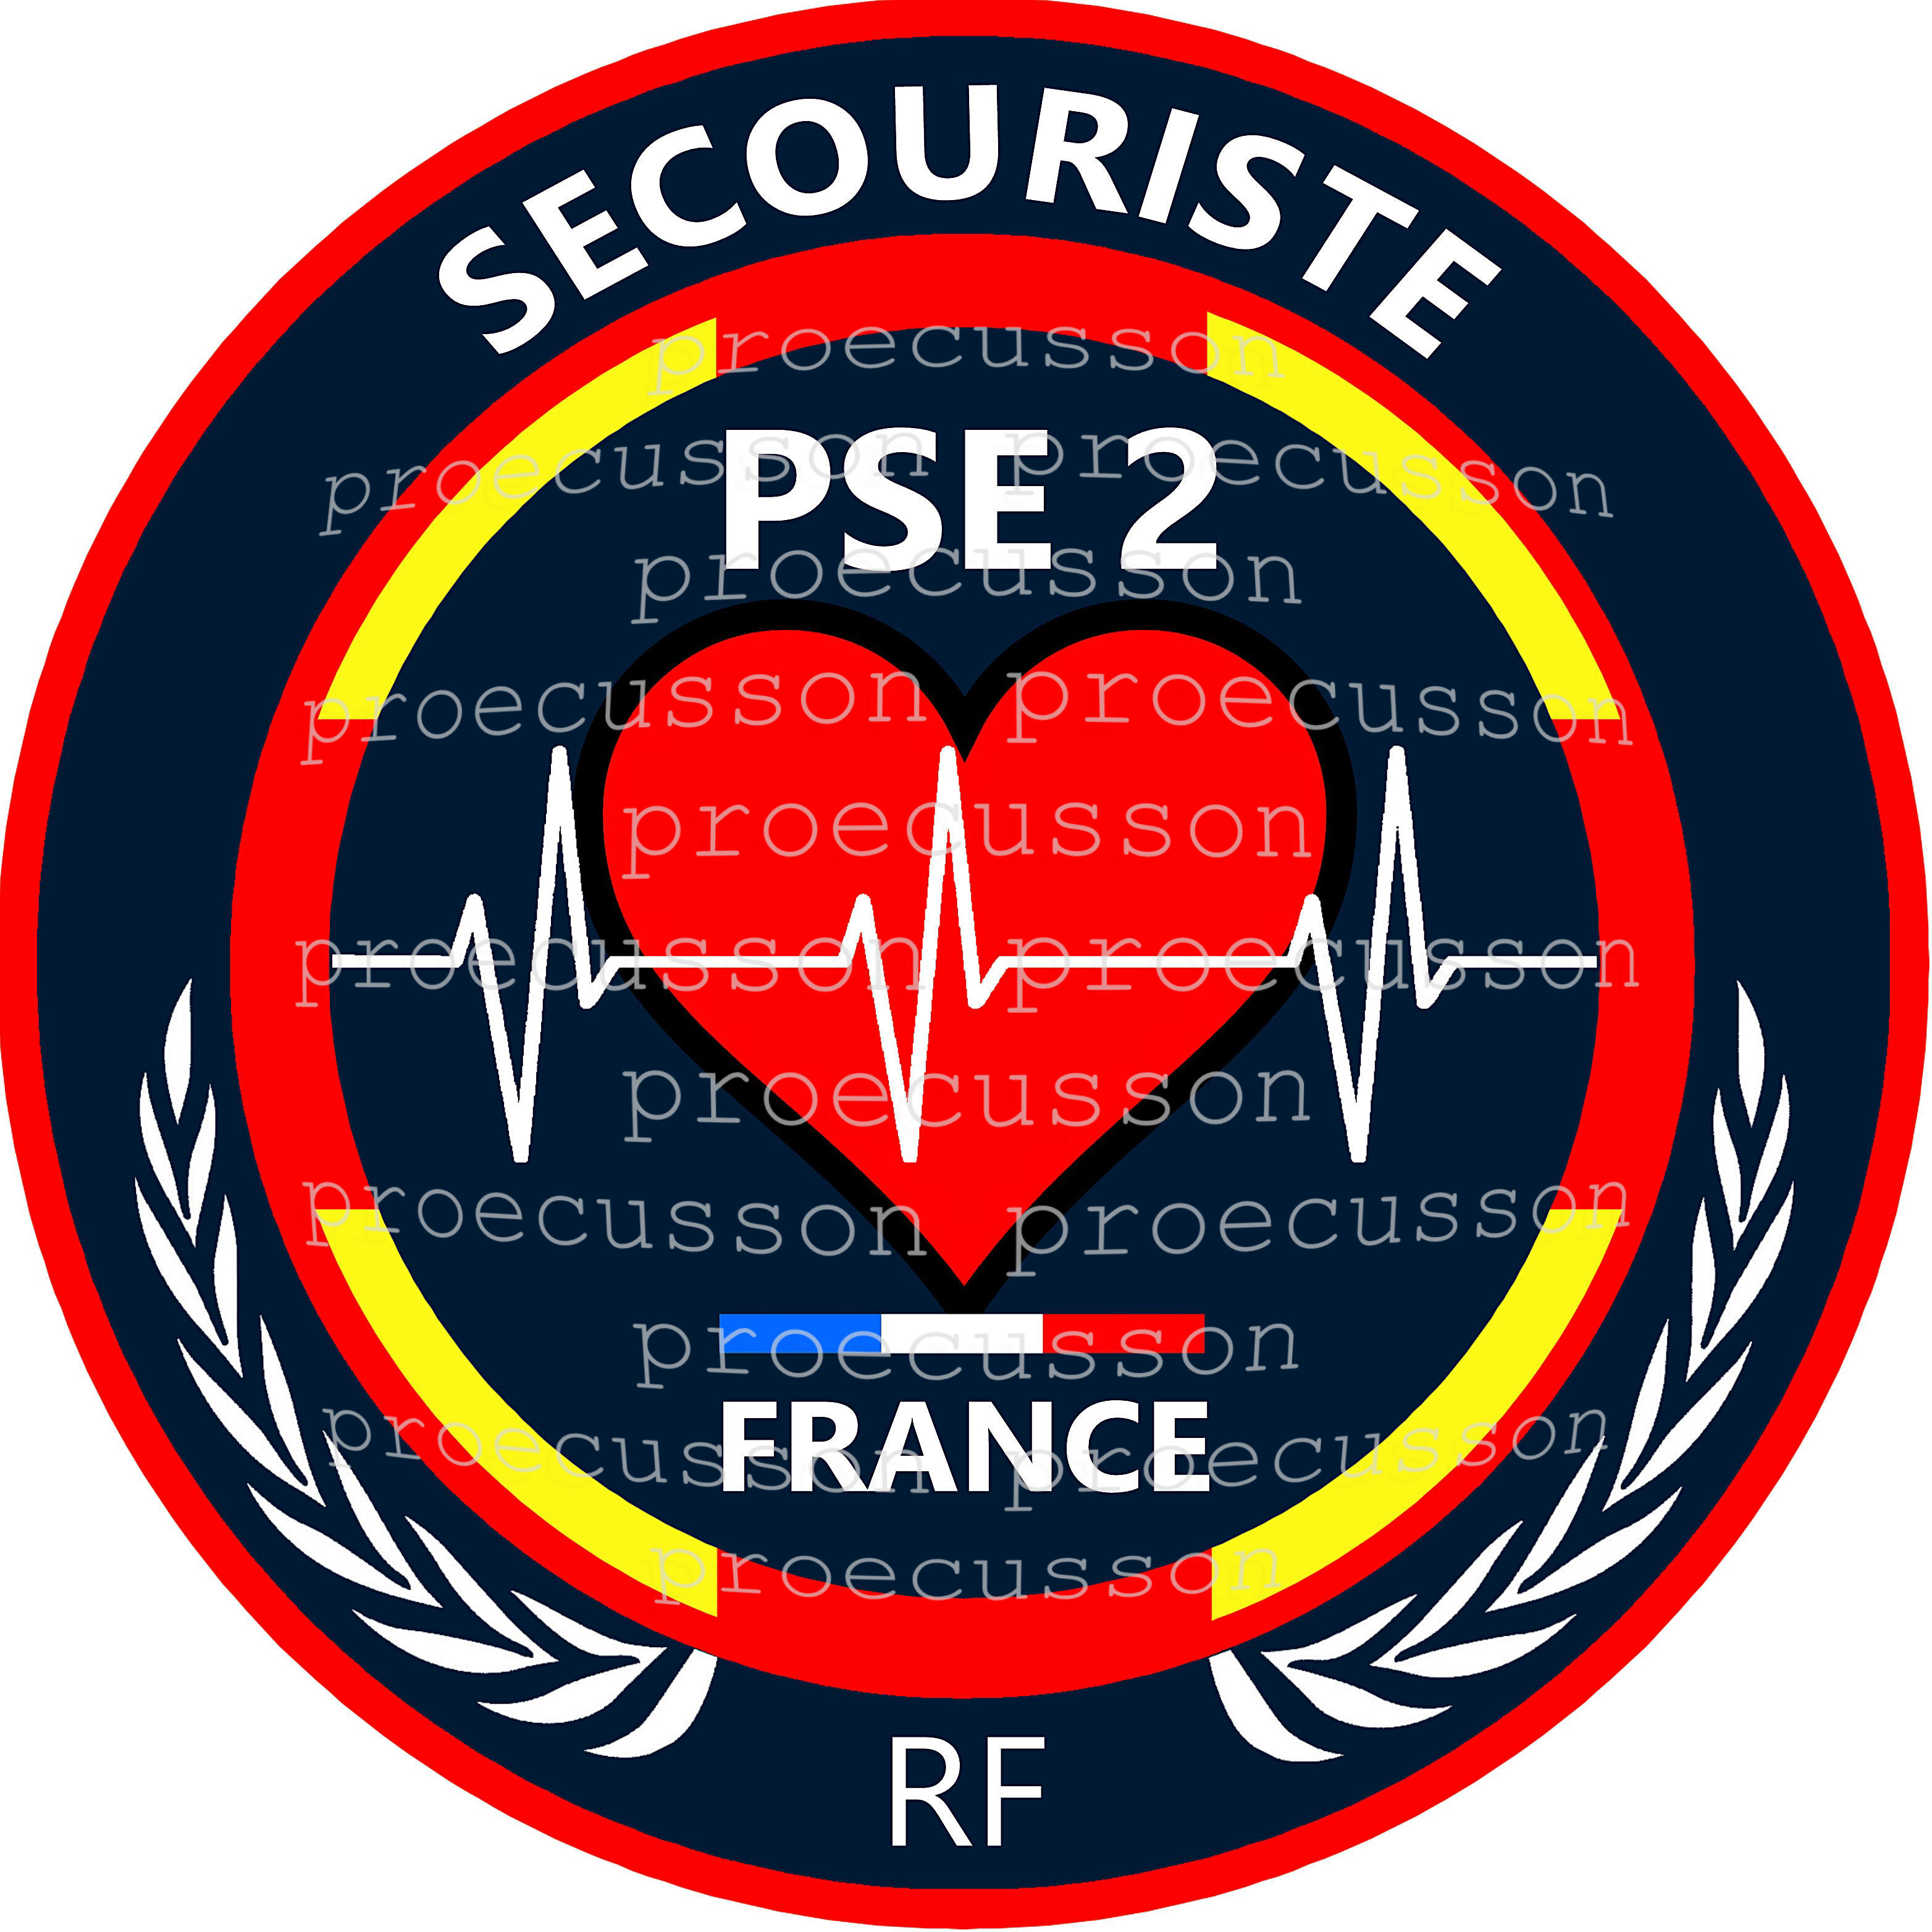 SECOURISTE PSE2